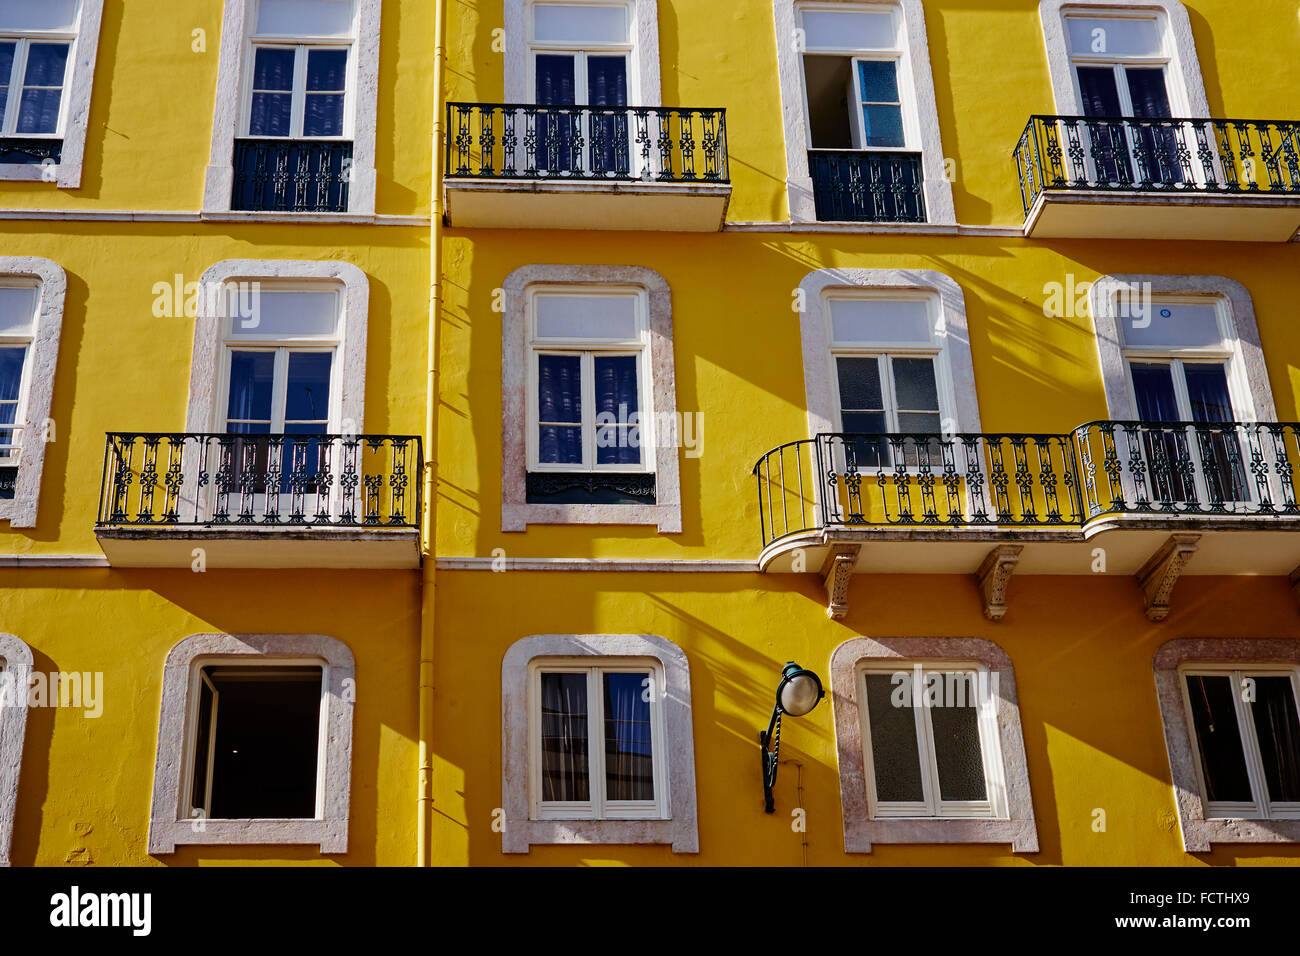 Portugal, Lisbon, Baixa pombalin, frontage of a appartement building - Stock Image